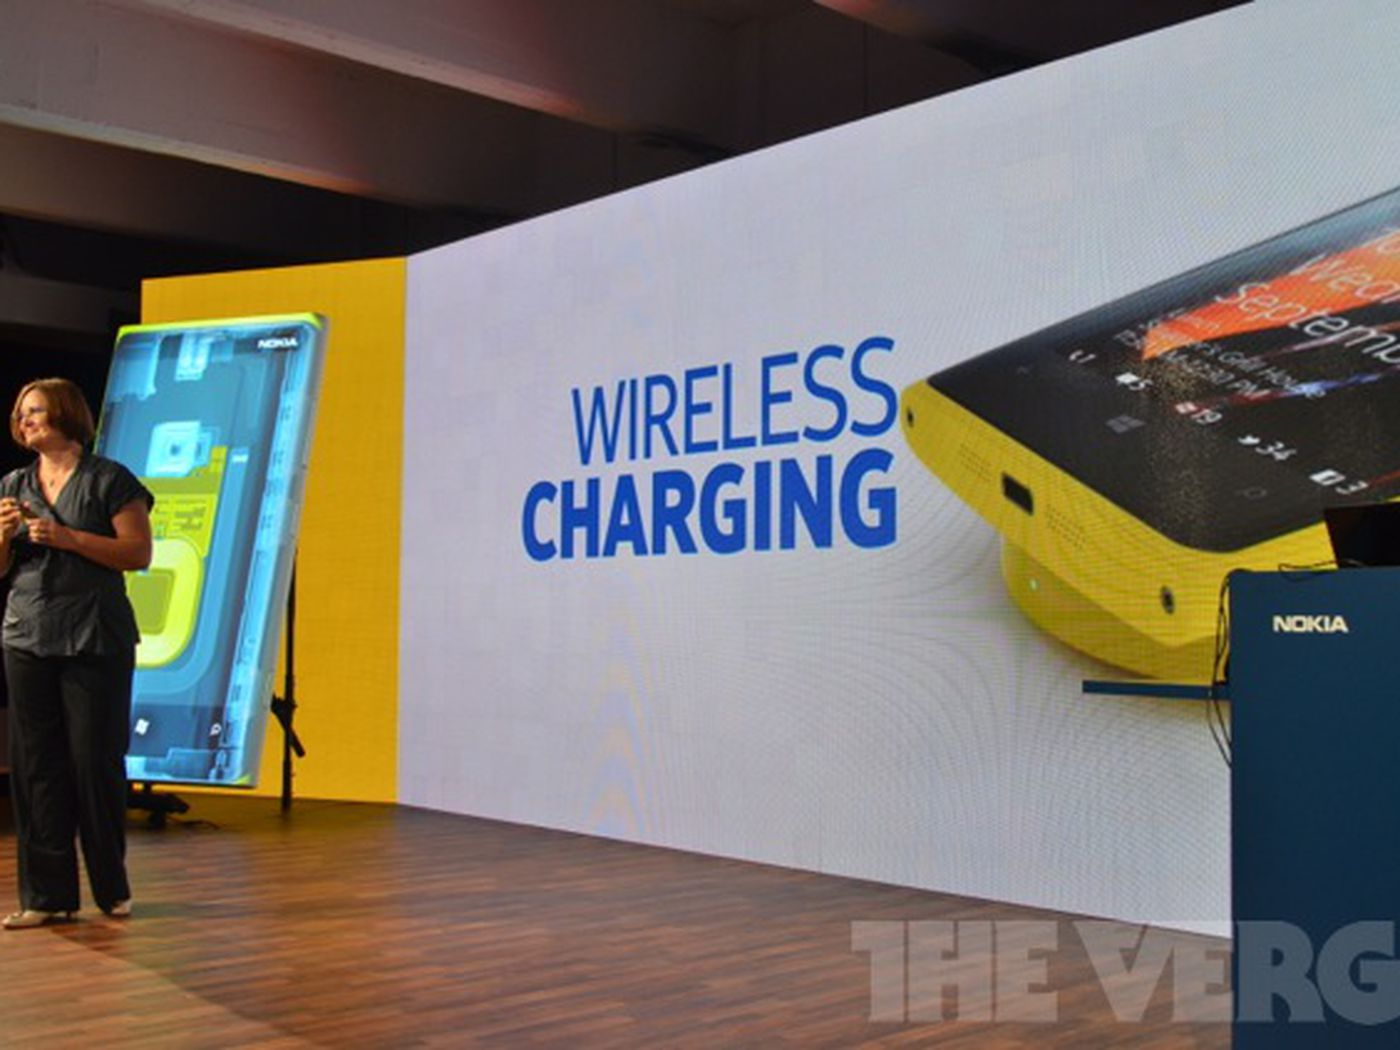 how does nokia advertise its products